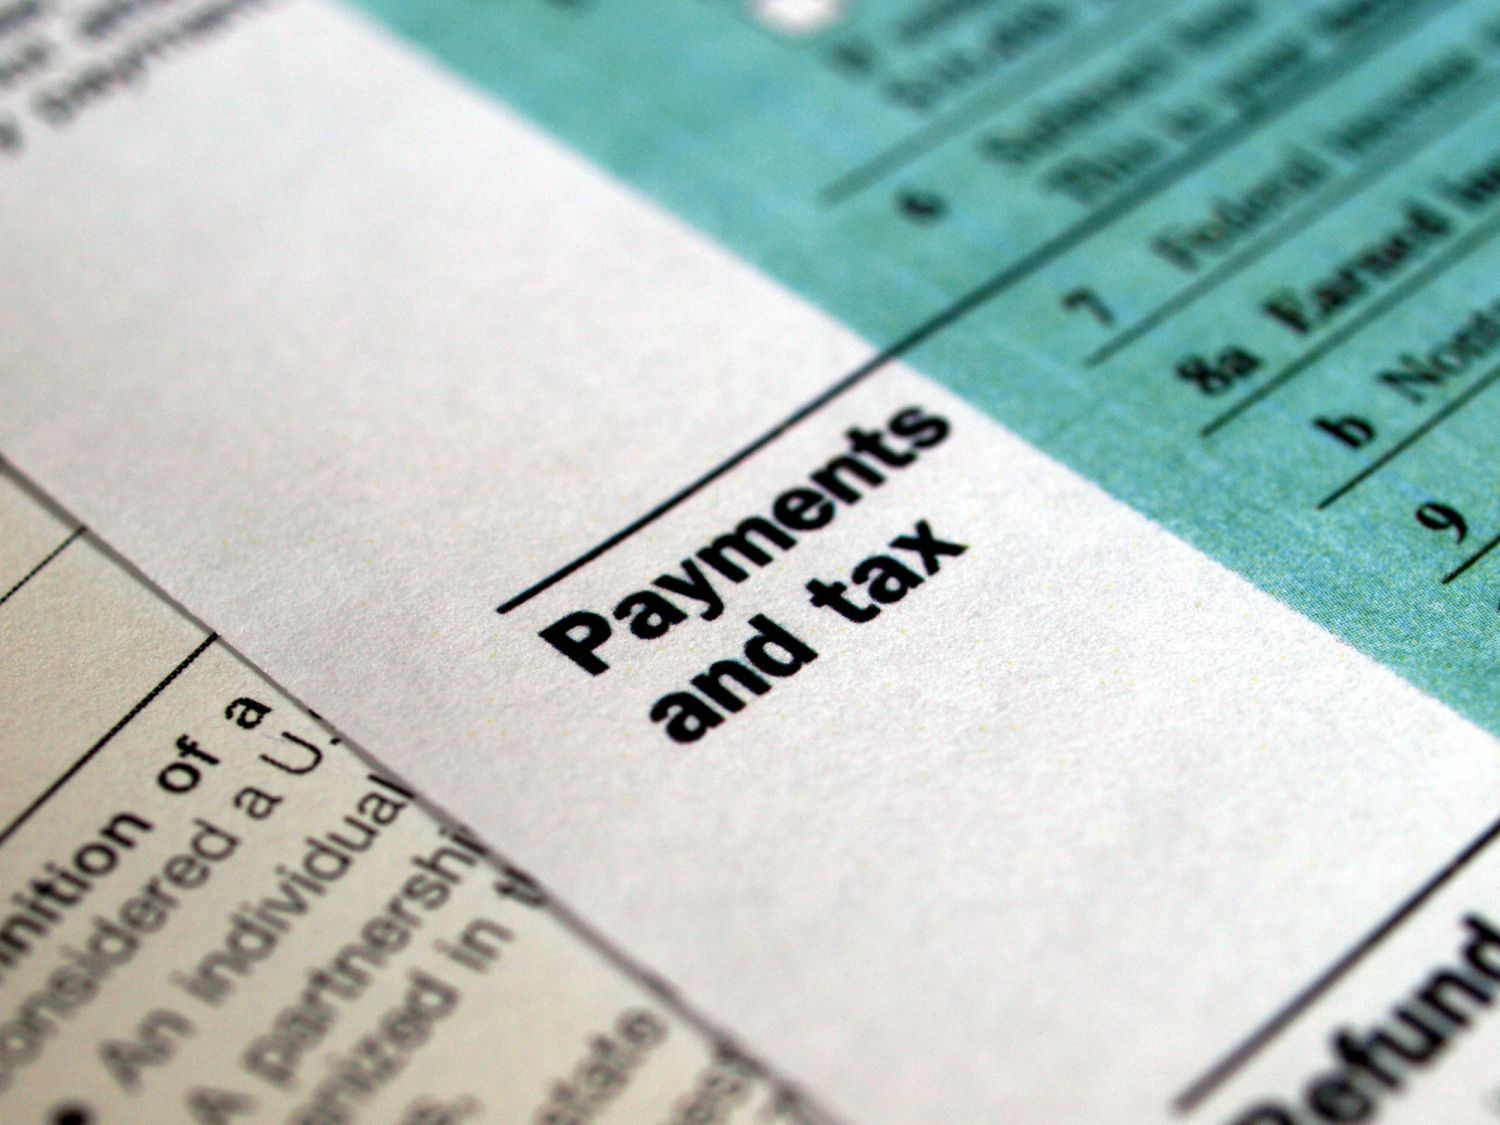 The PA Department of Revenue ads will come to an end